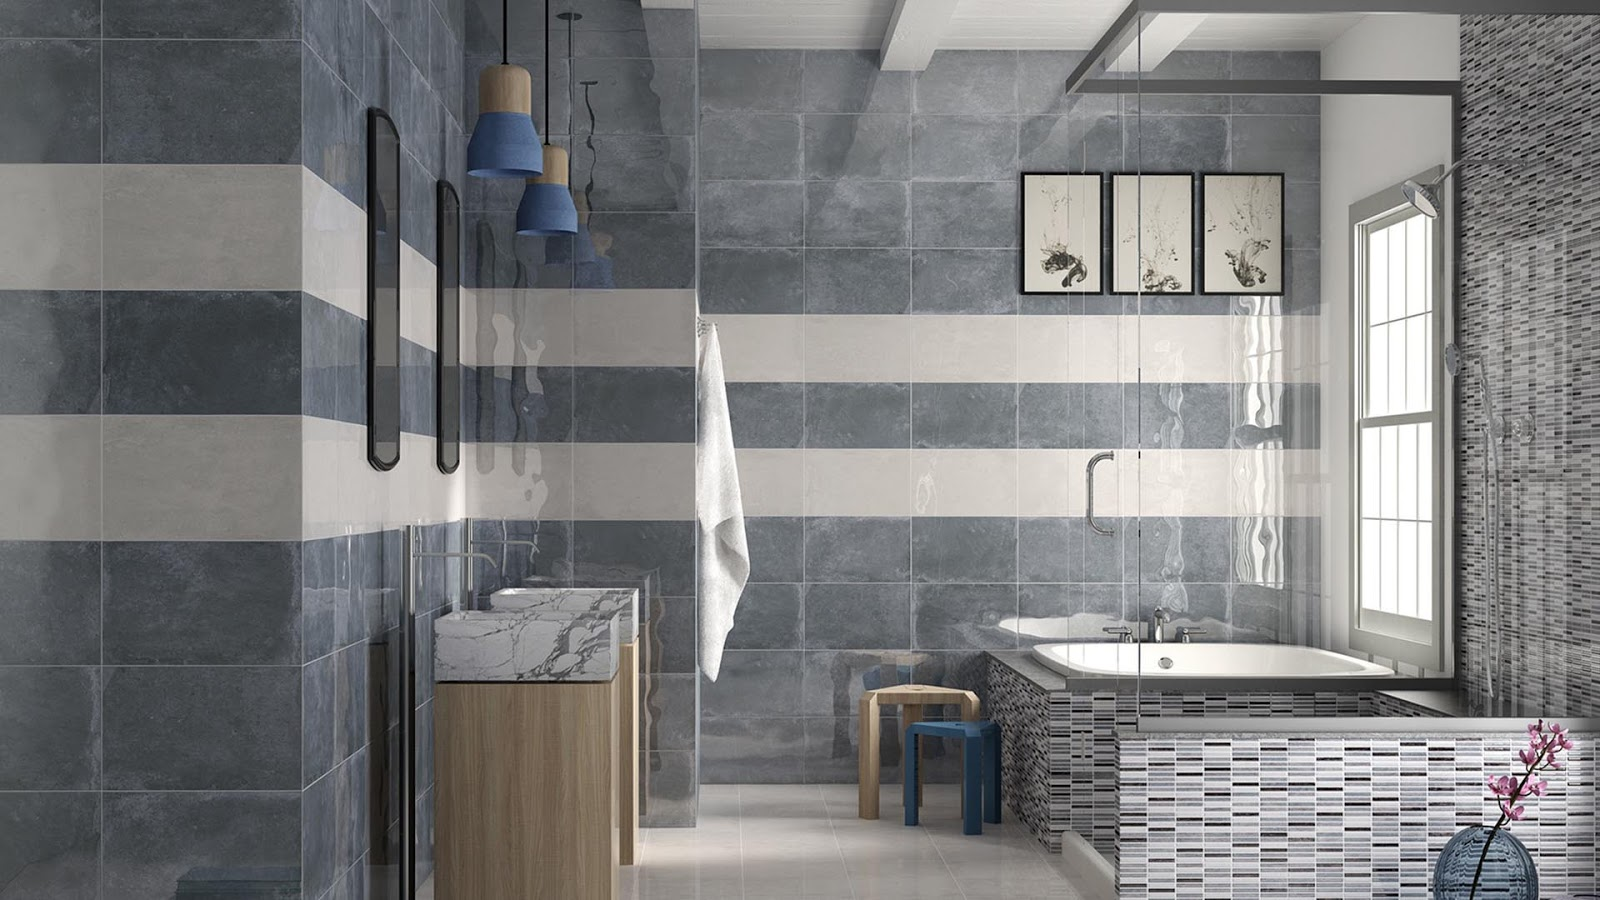 Charmant Home Tiles Design With Friendlytile Of Argenta Ceramica